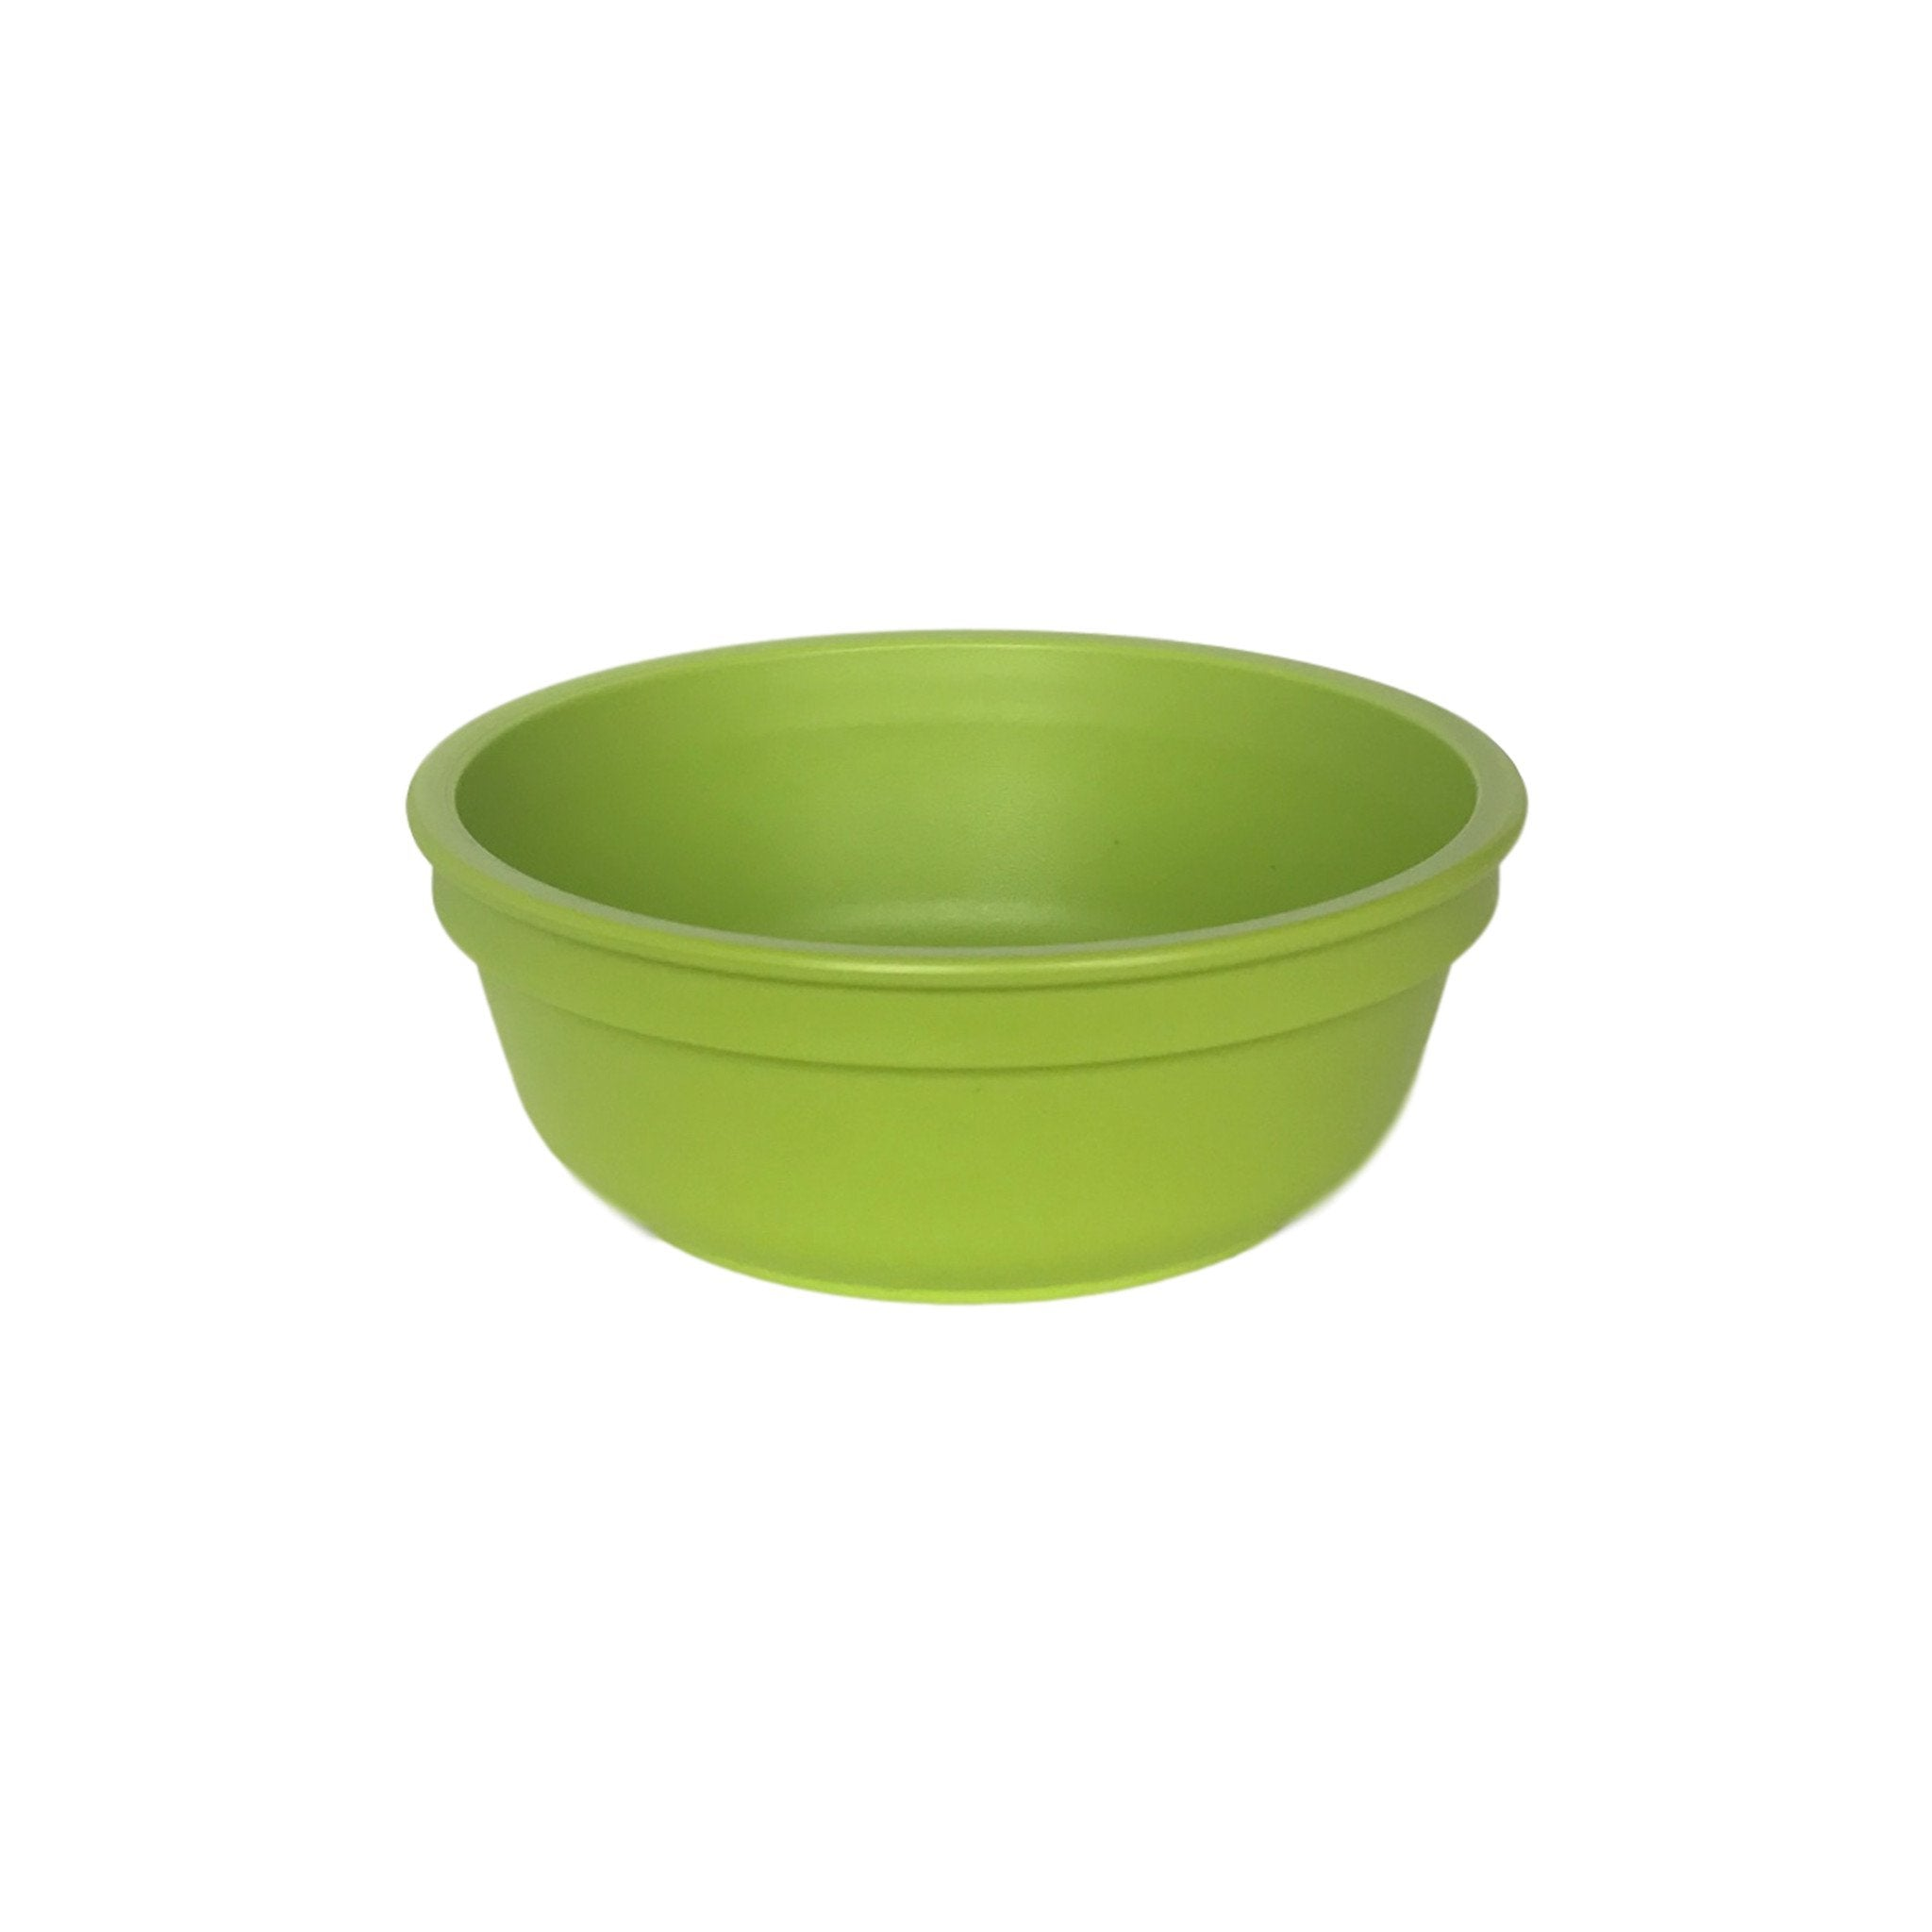 Replay Bowl Replay Lifestyle Green at Little Earth Nest Eco Shop